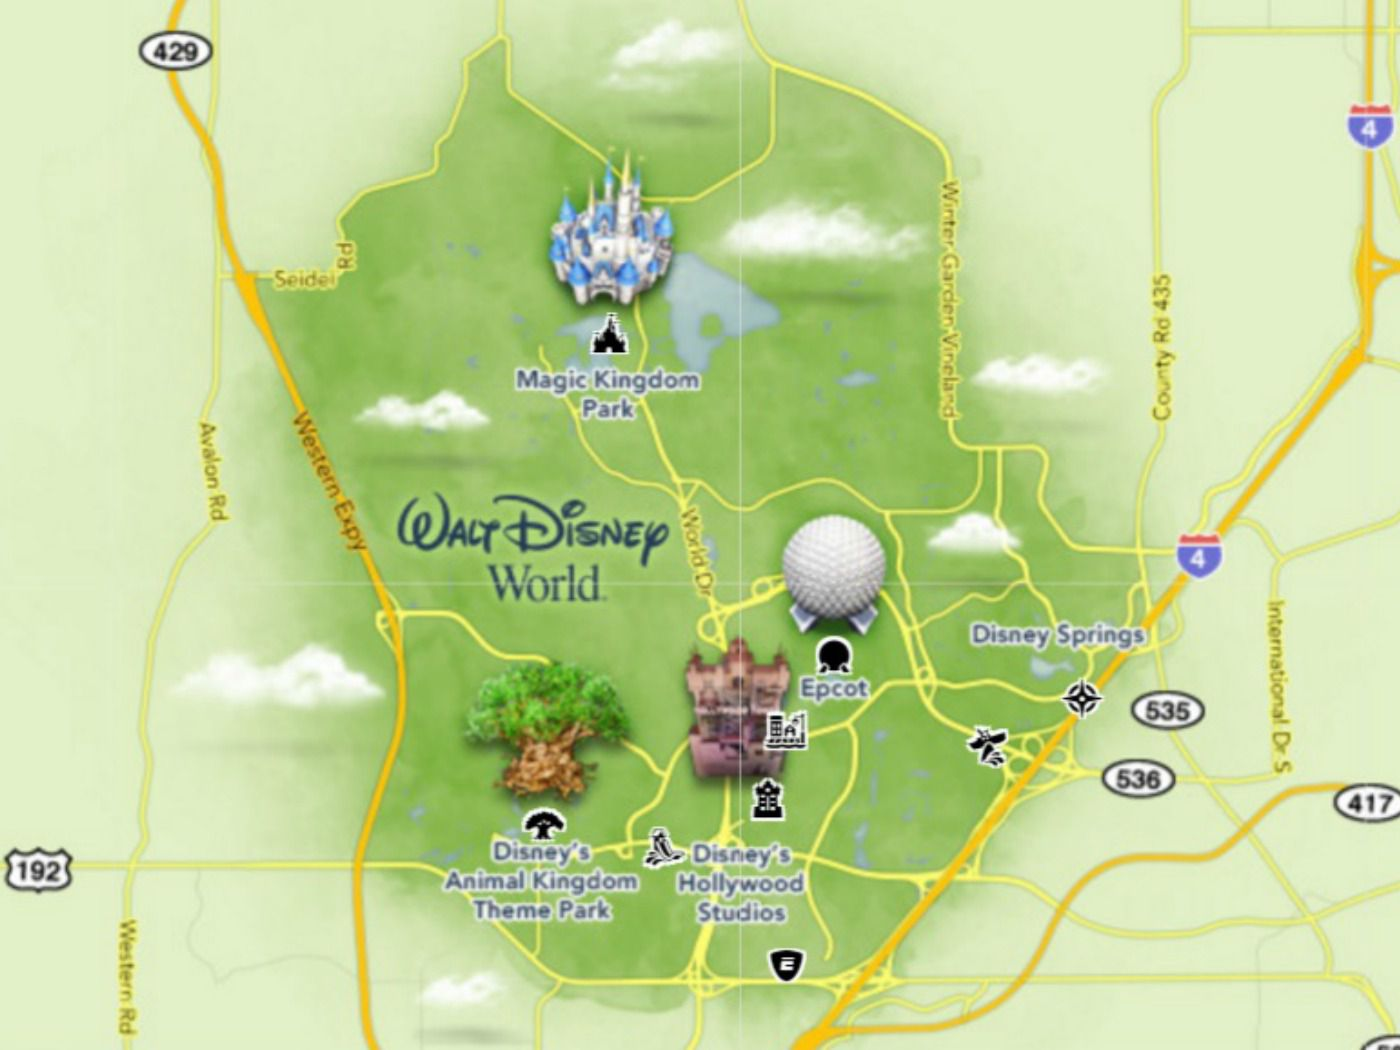 Maps of Walt Disney World's Parks and Resorts Disney World Campground Map on